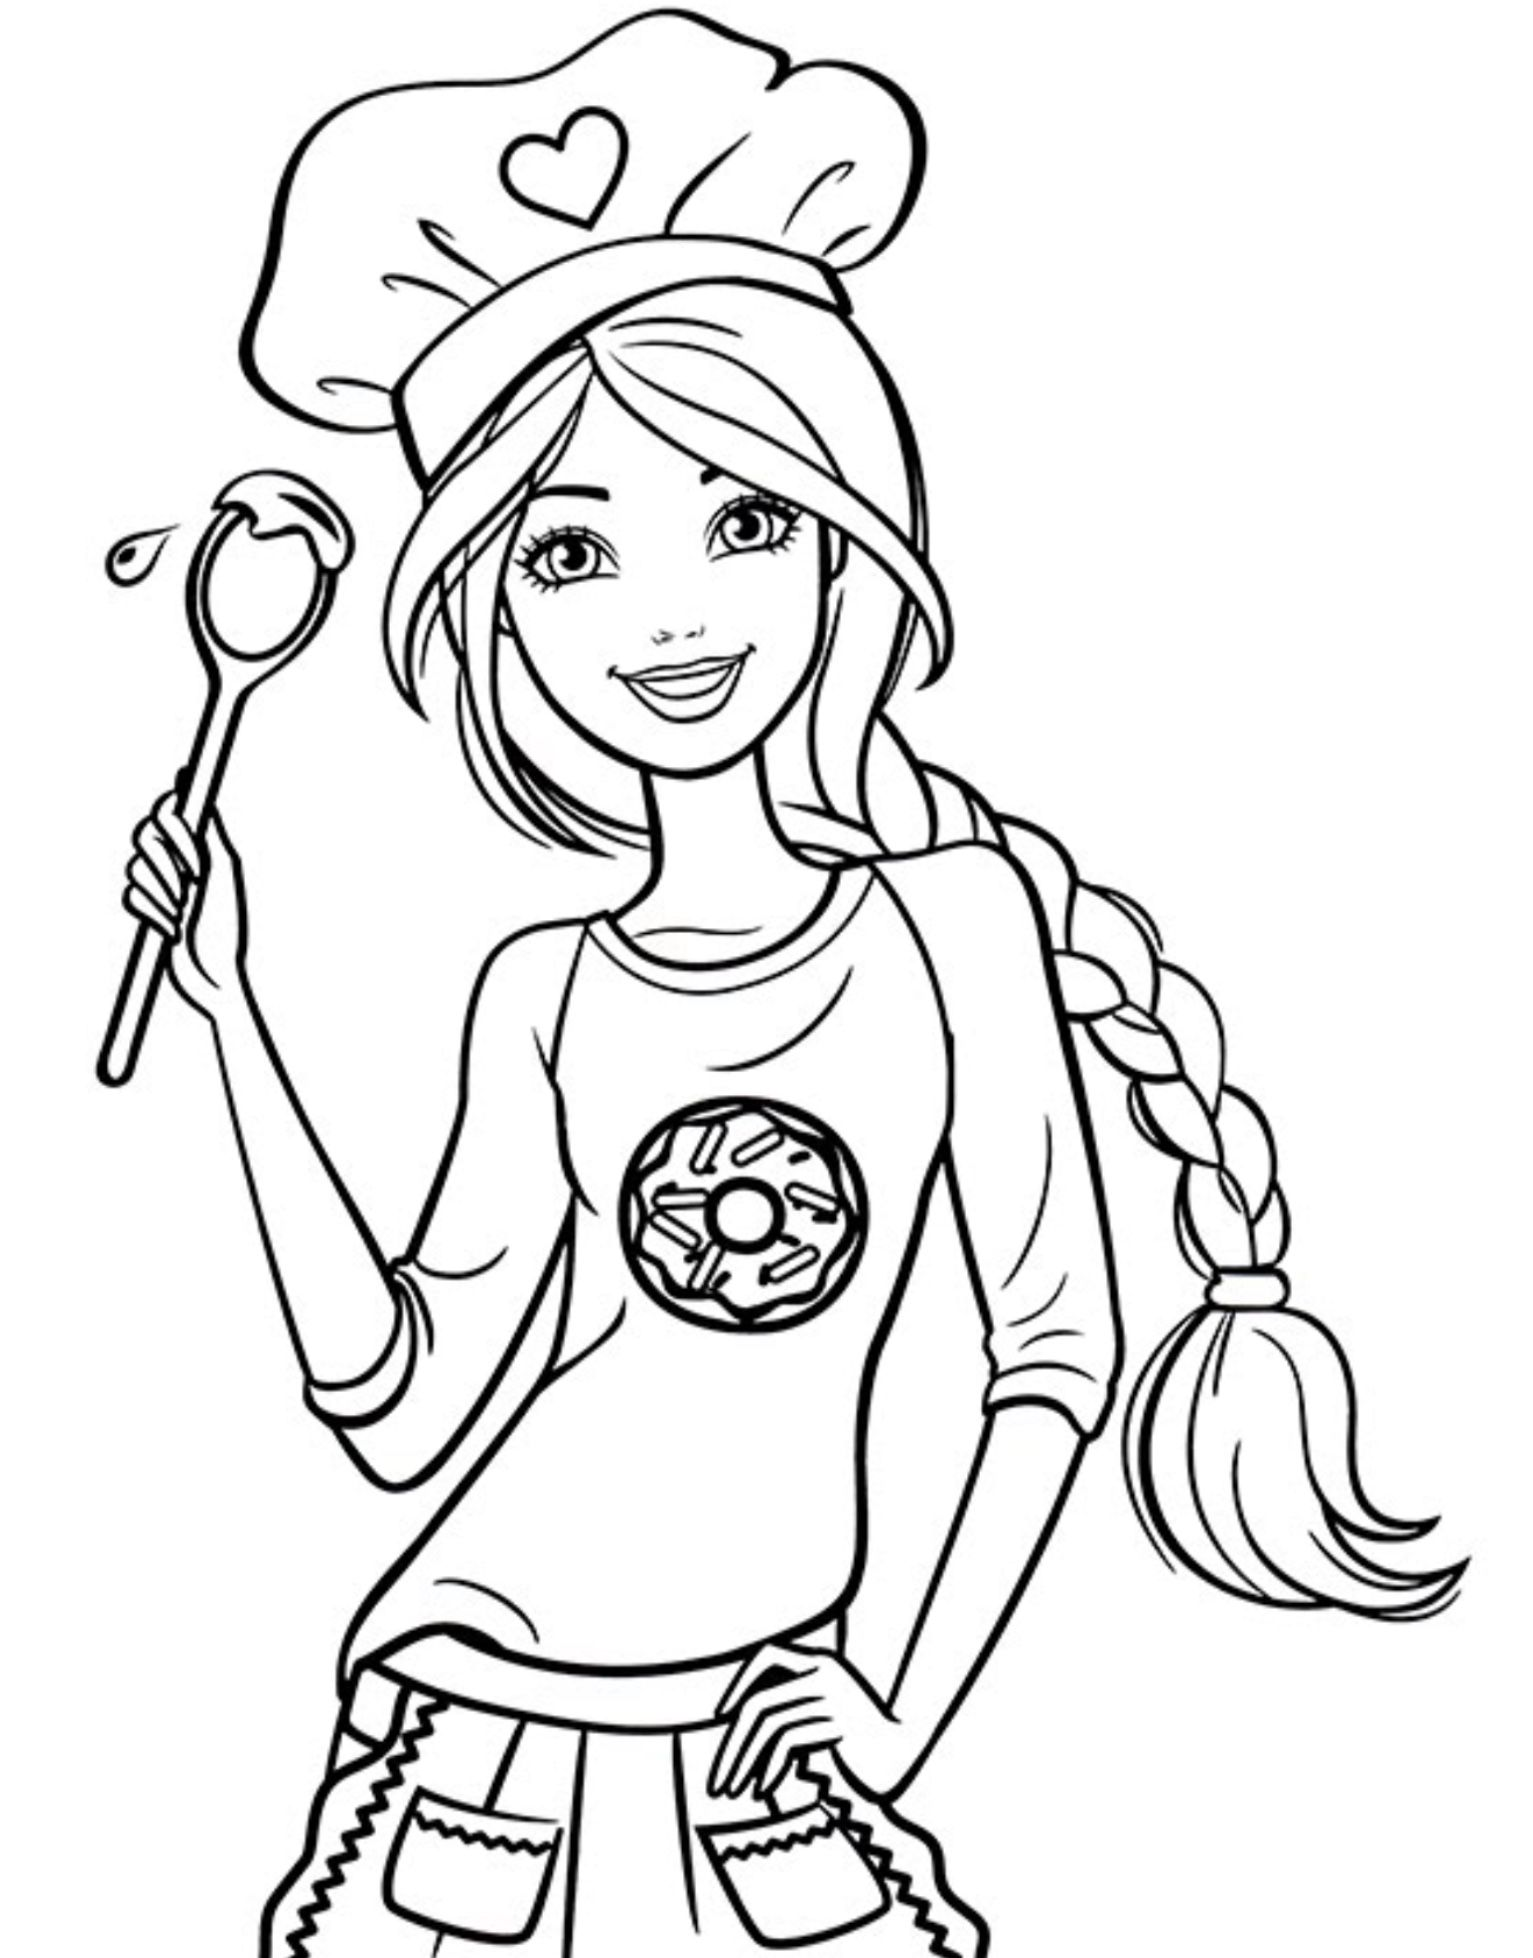 barbie coloring book chef barbie coloring page Раскраски дисней Рисунки для barbie book coloring